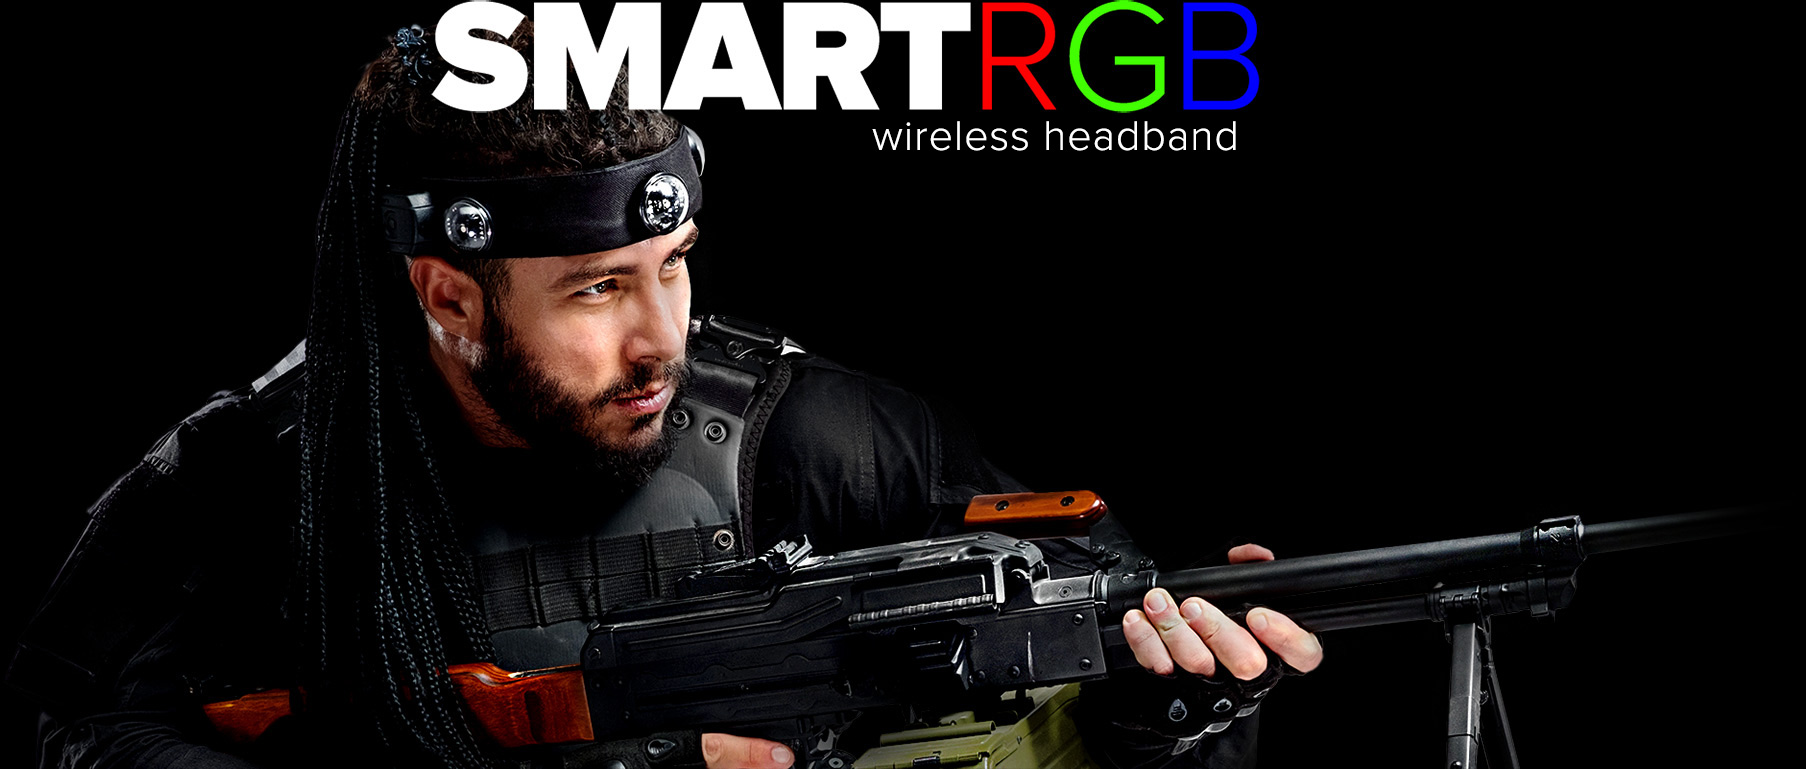 Smart RGB headbend